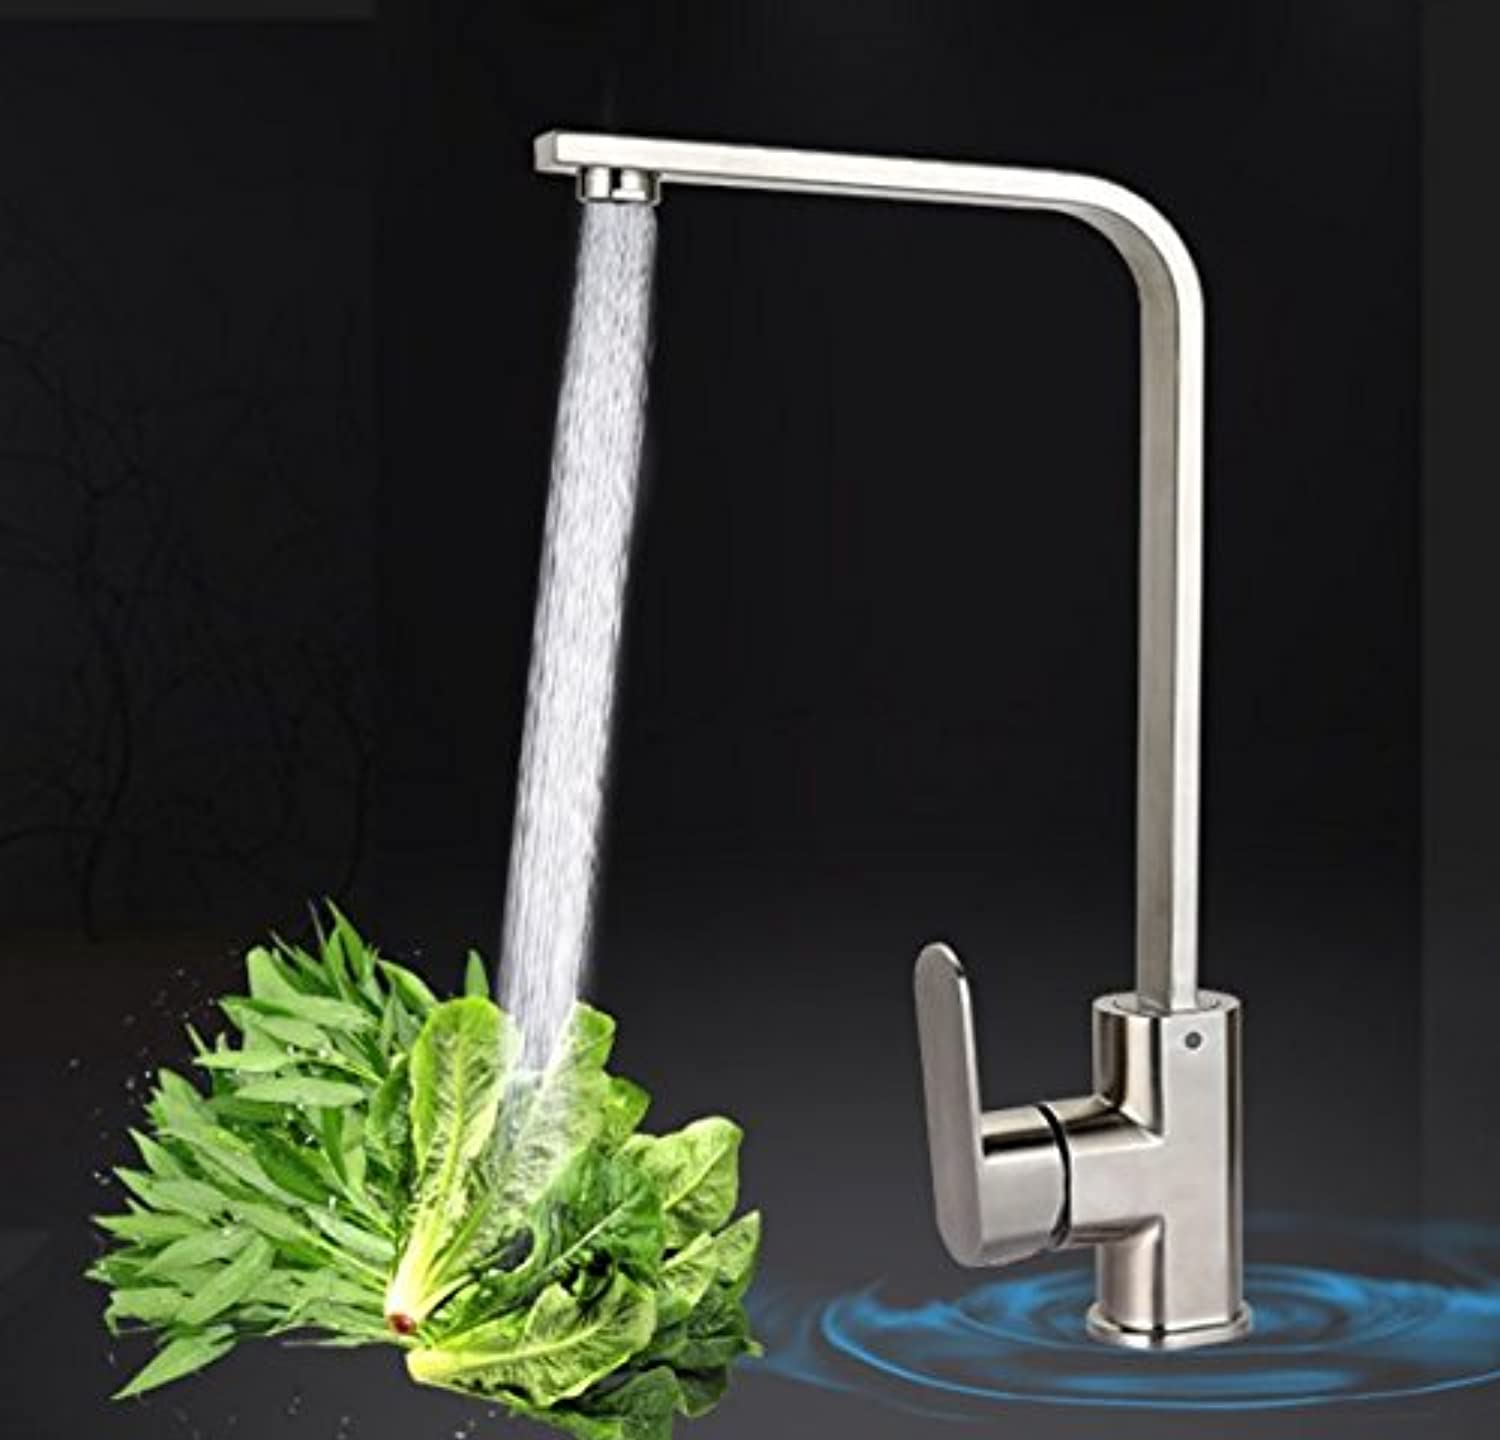 Mangeoo Faucet Stainless Steel Kitchen Sink Wash Dishes Dish Faucet greenical redary Cold Hot Wire Drawing Faucet